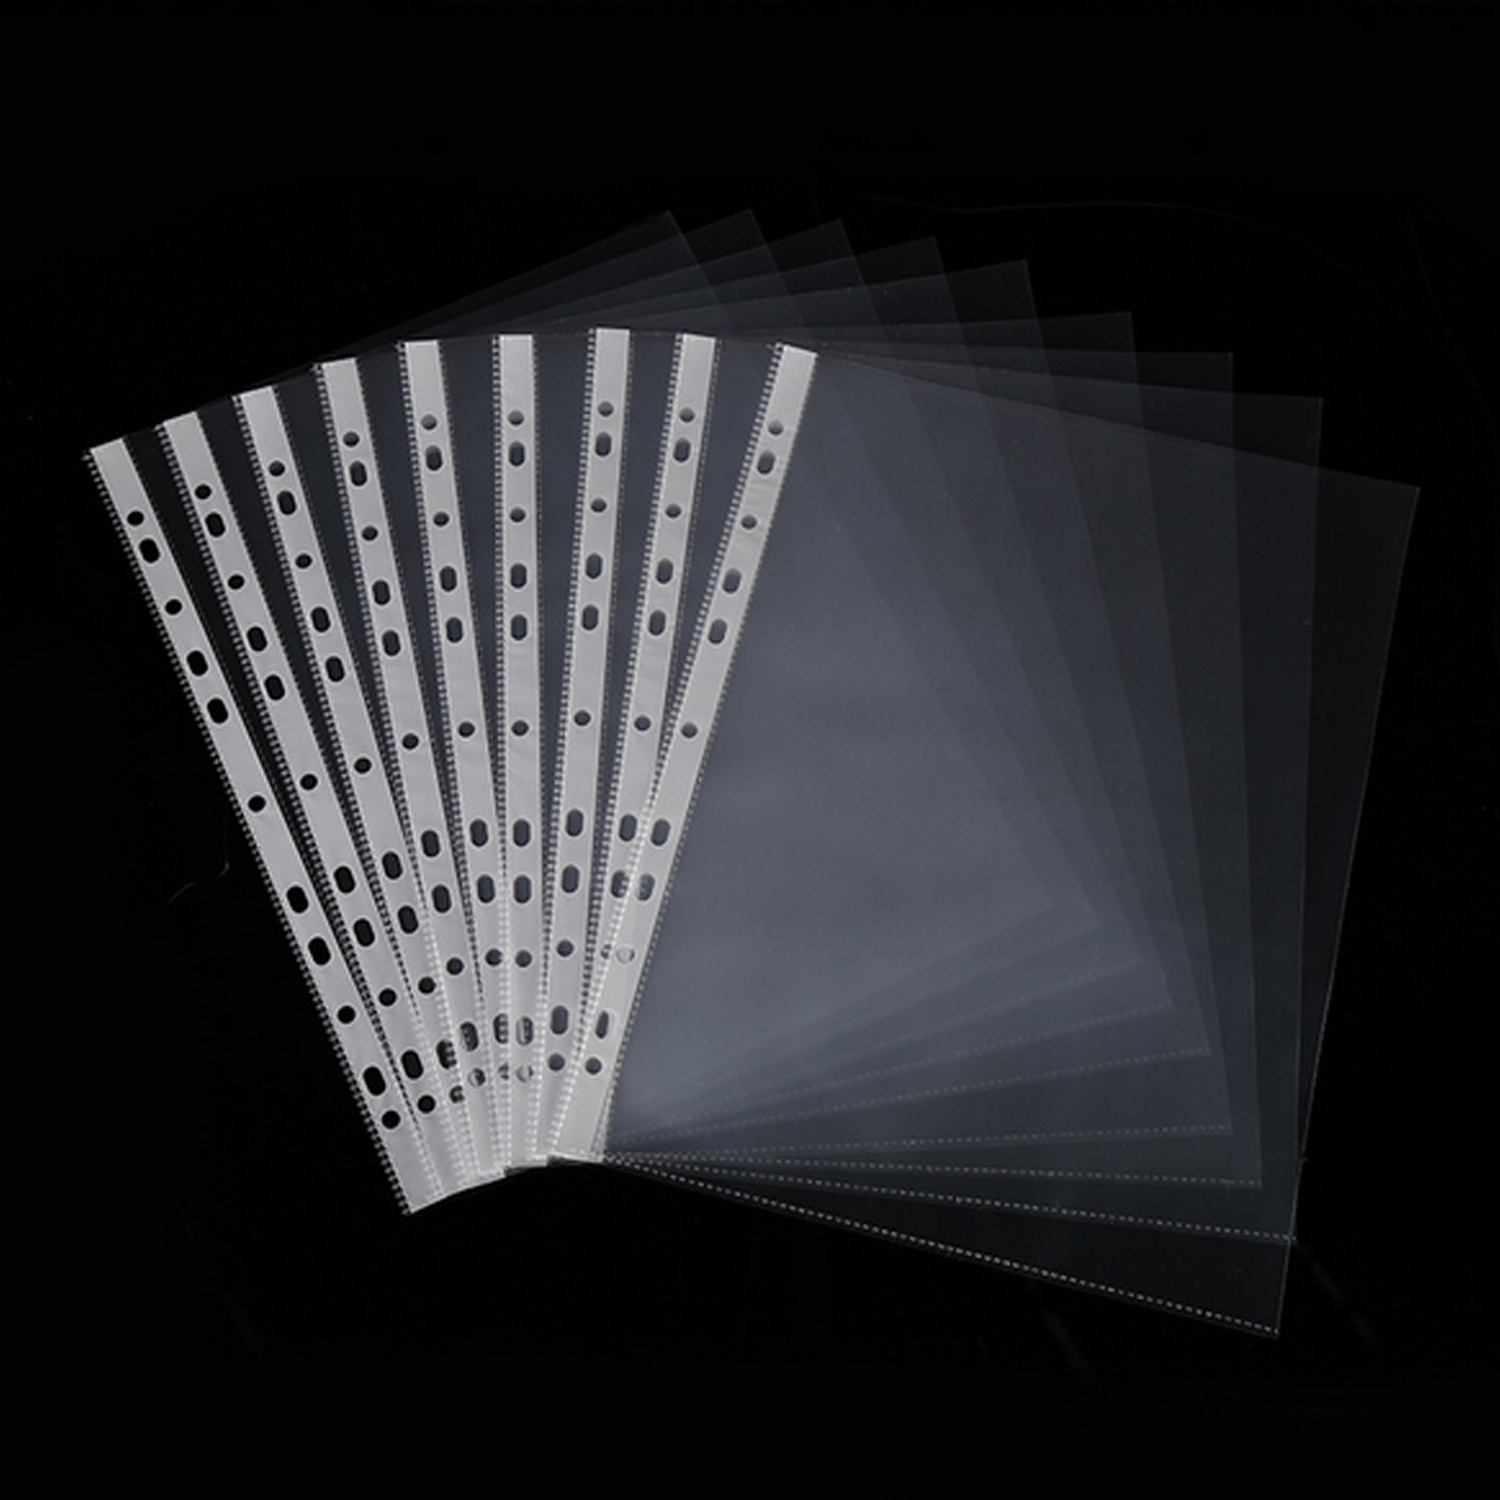 100PCS A4 Size Multipurpose 11-Hole Loose Leaf Clear PVC Sheet Page Protectors For Documents Files Paper